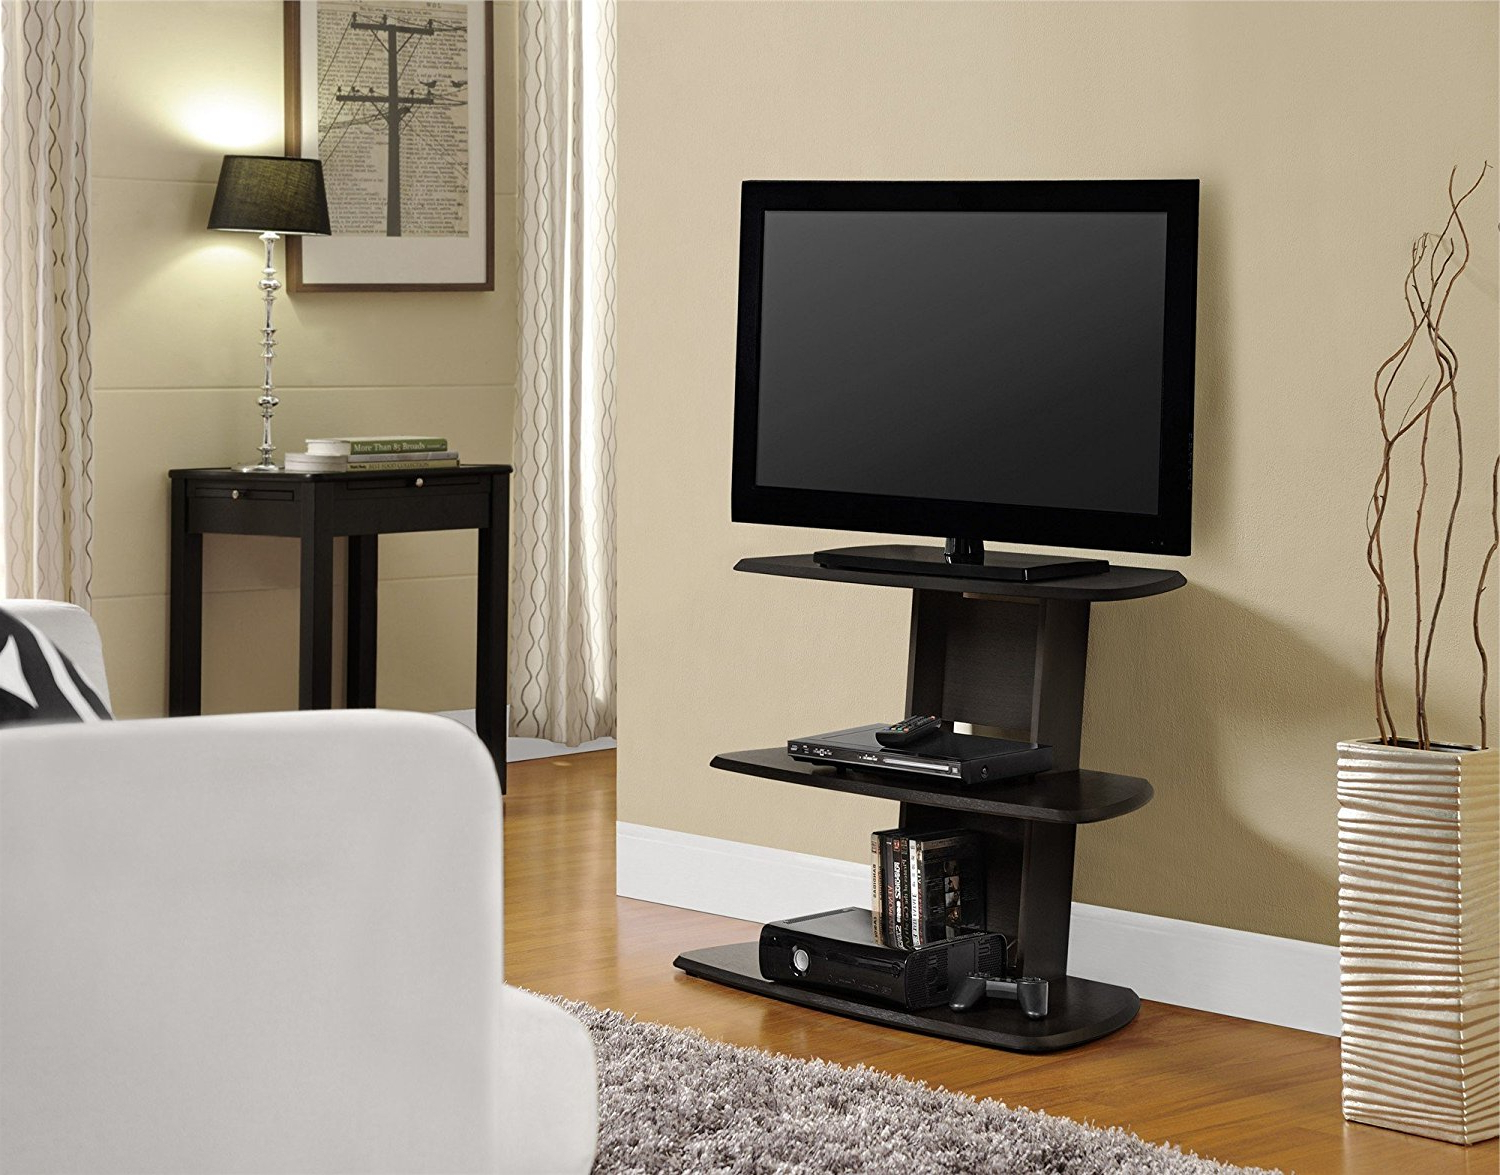 2018 24 Inch Corner Tv Stands Intended For How To Find A 32 Inch Tv Stand For Your Budget – Furnish Ideas (View 1 of 20)